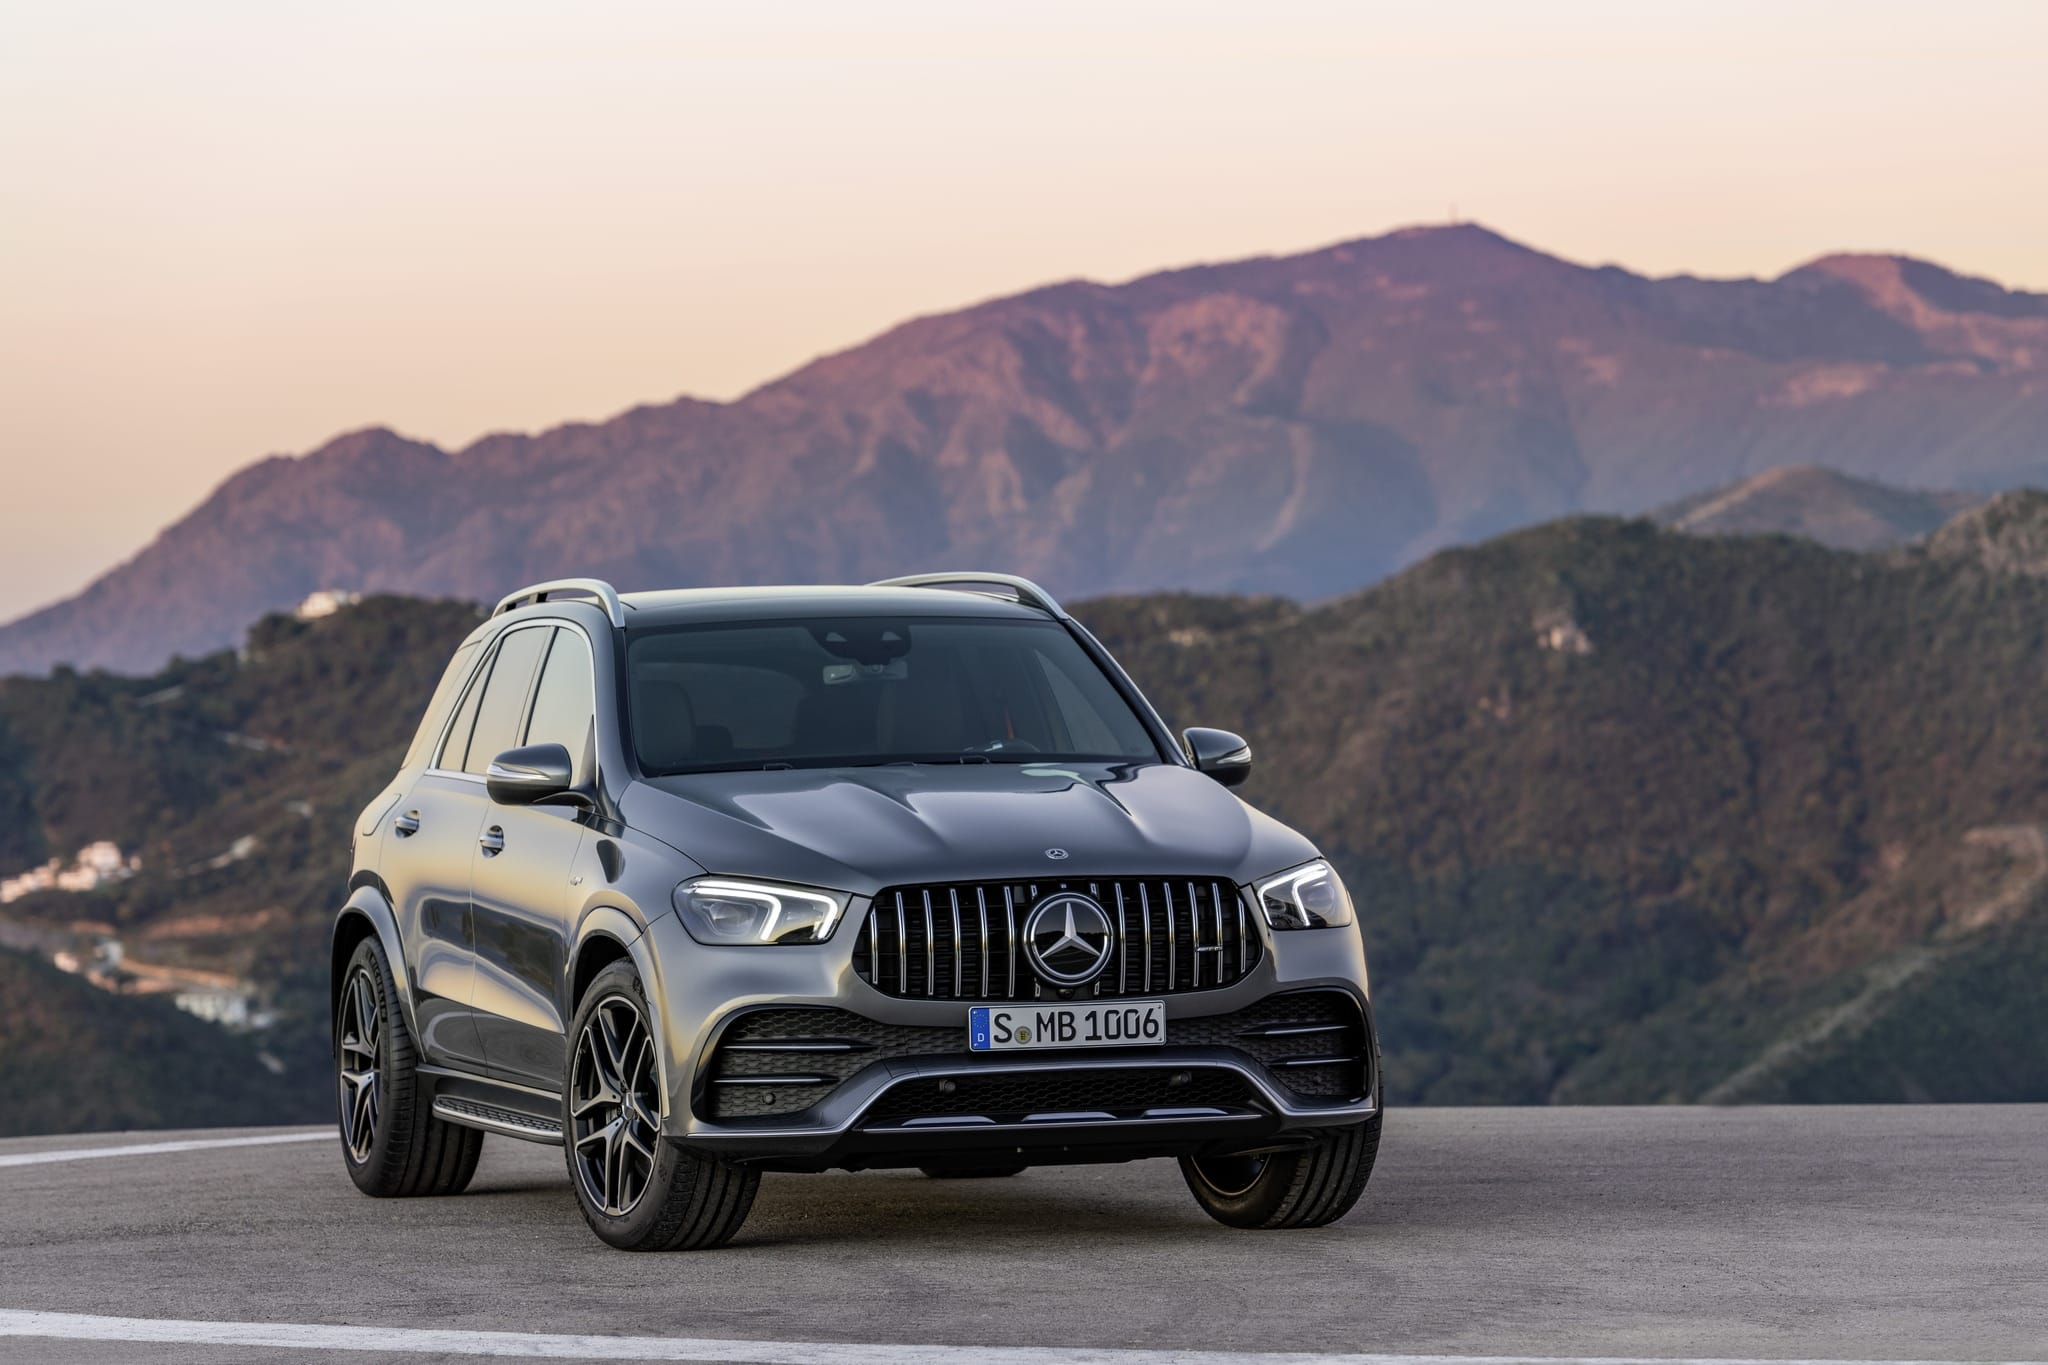 Модель MERCEDES-AMG GLE 53 4MATIC + поступает в продажу в Европе